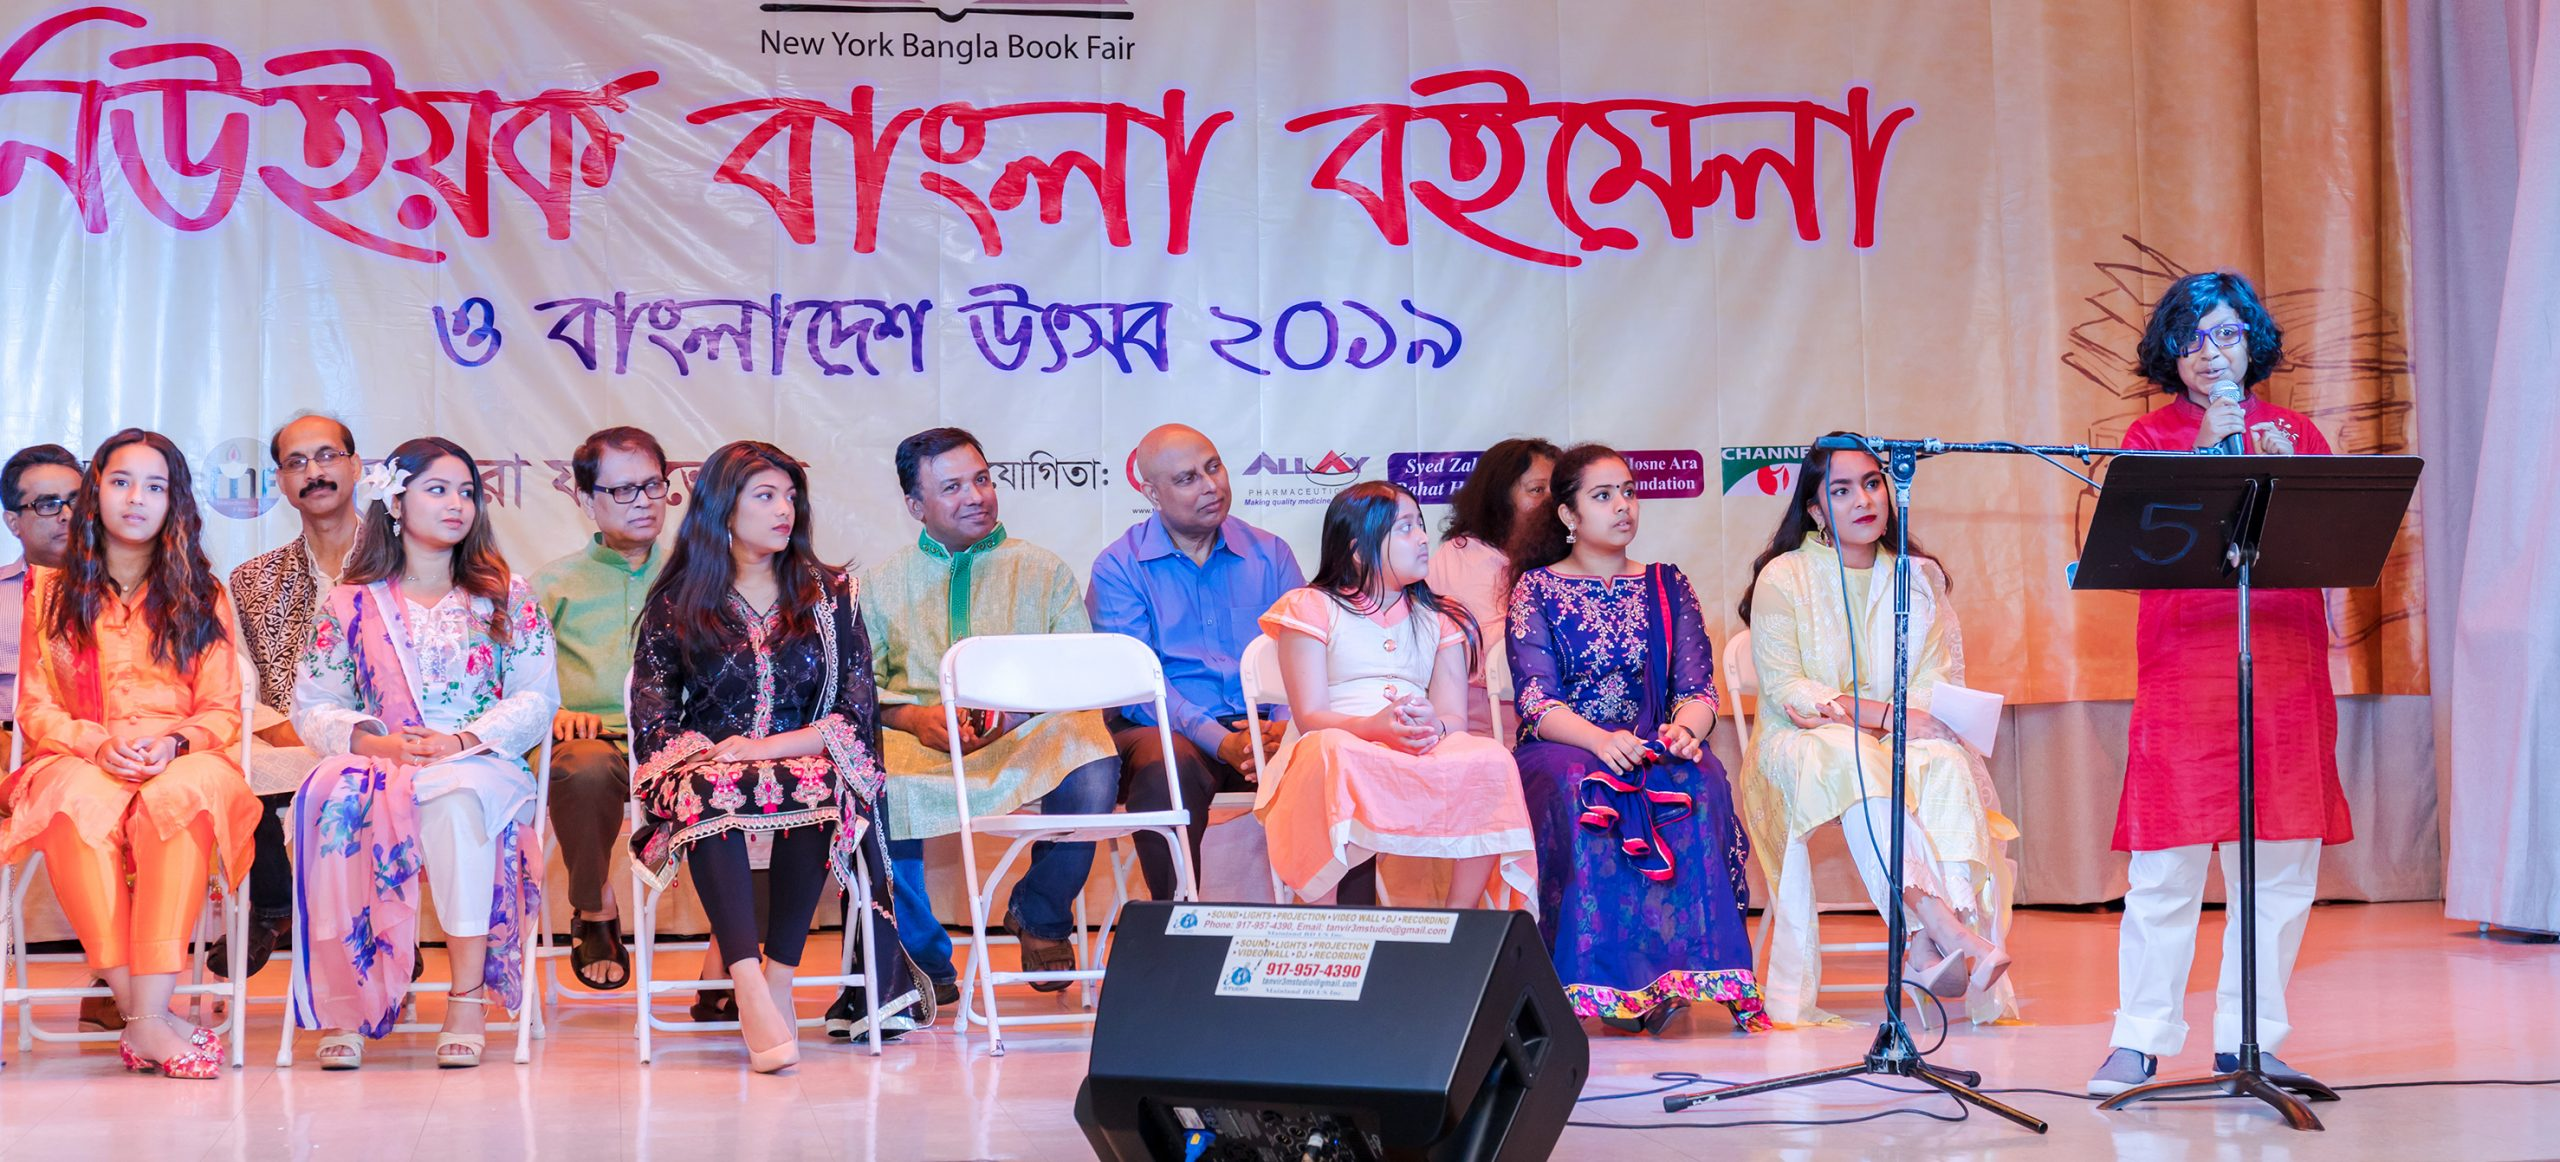 Young Artist Faseer Kabir Kabbo is reciting poetry at the New York Bangla Boimela 2019